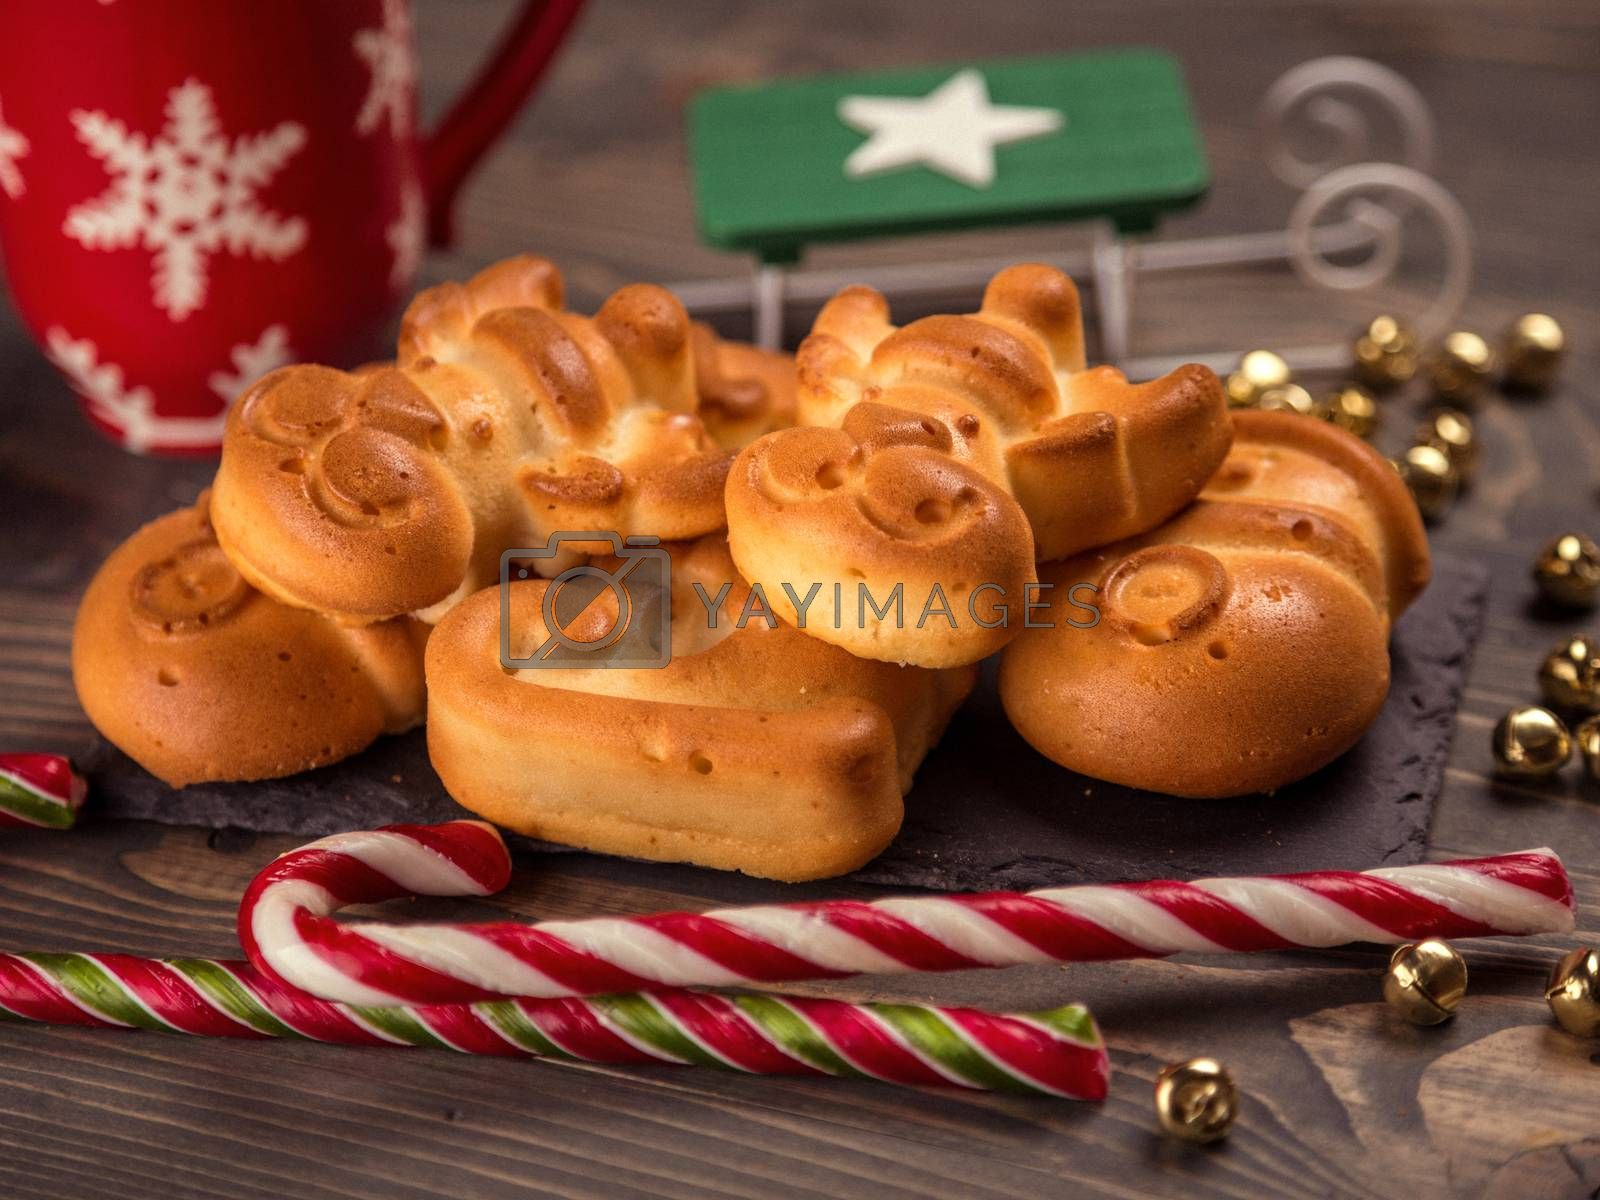 Christmas cookies homemade on brown wooden background. Table top shot of a nicely decorated Christmas cookies on rustic wooden table. Christmas background with ruddy gingerbread and homemade cookies.